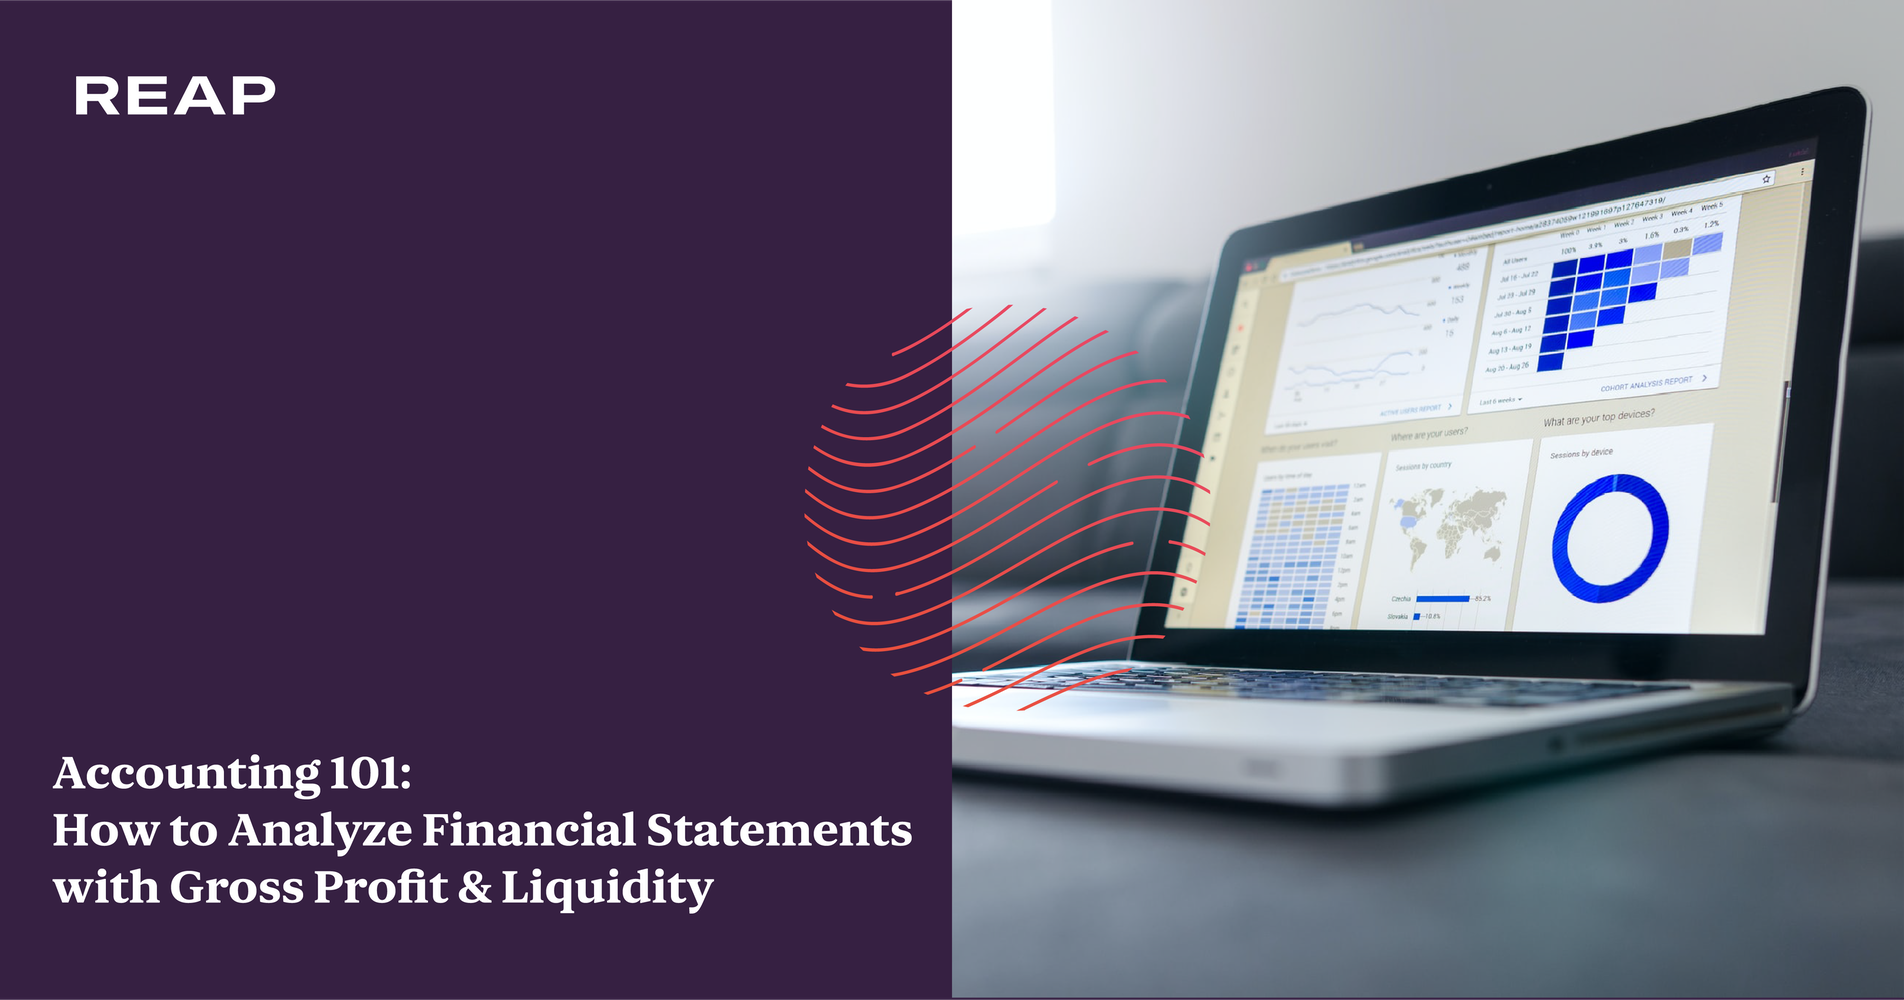 Cover Image for Accounting 101: How to Analyze Financial Statements with Gross Profit & Liquidity